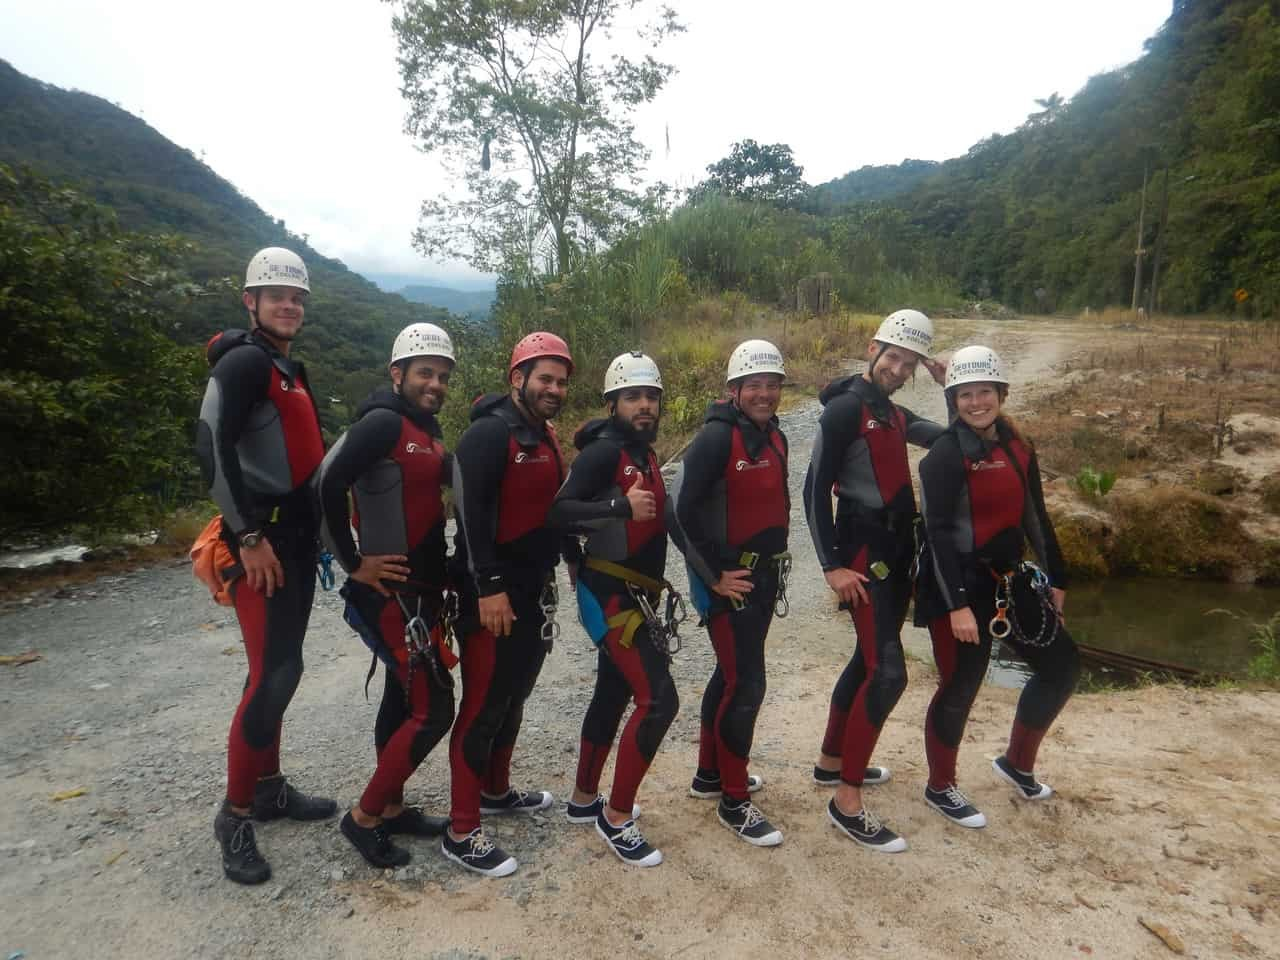 Smiling to a camera before we get wet in the canyons with Takiri Travel, Ecuador